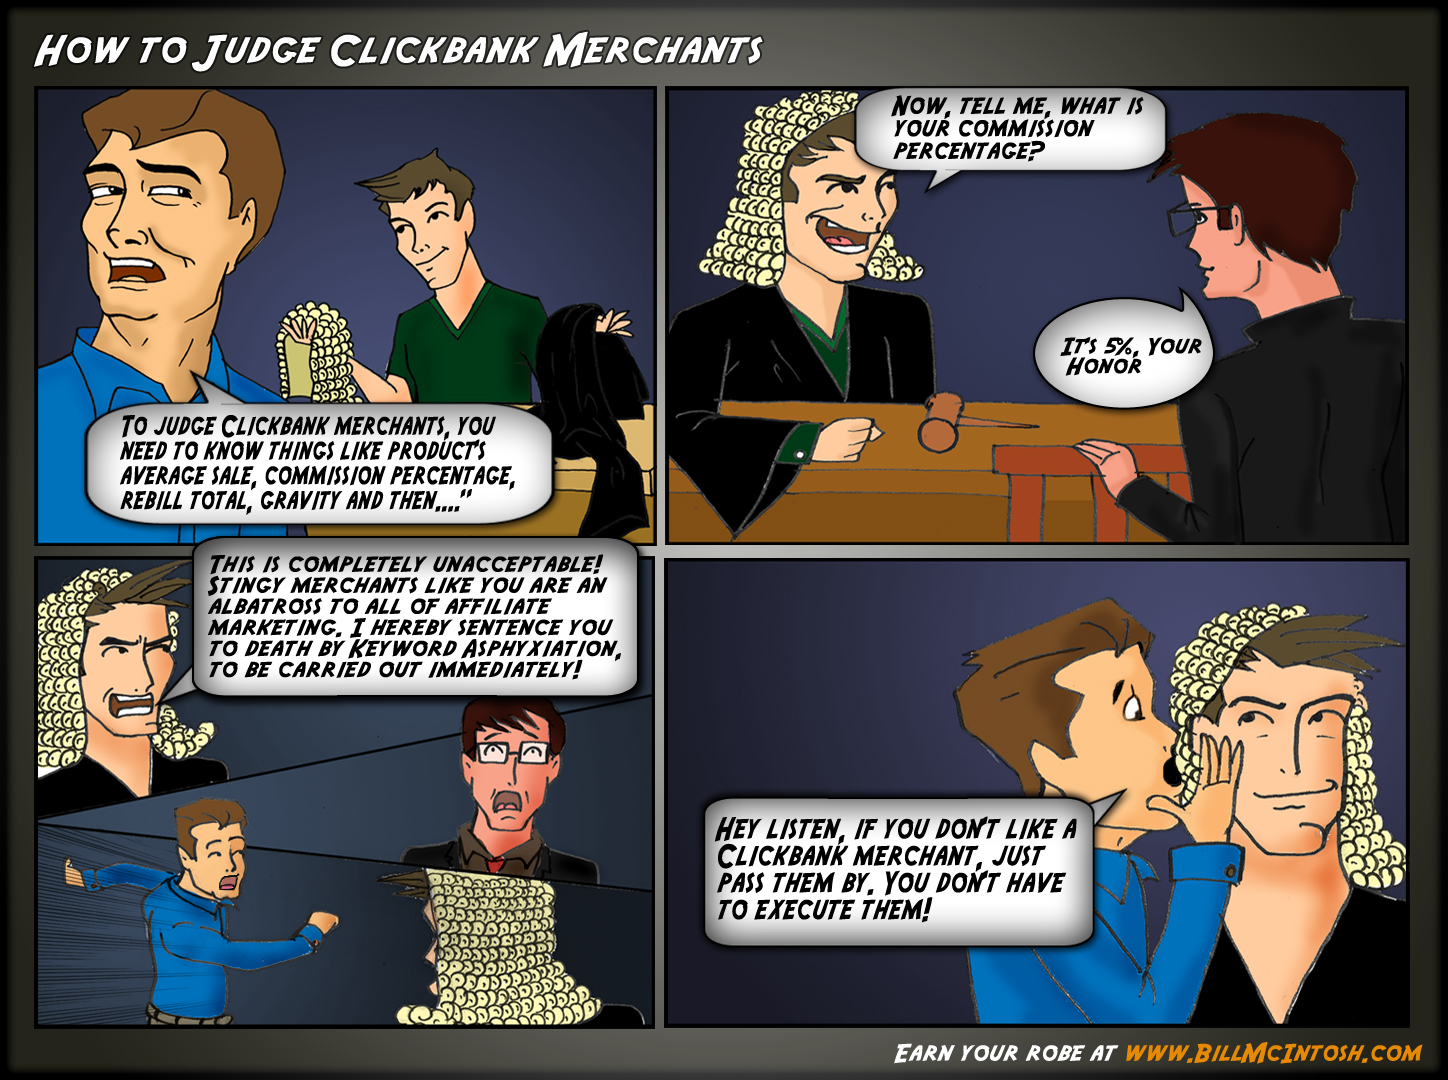 How to Judge Clickbank Merchants